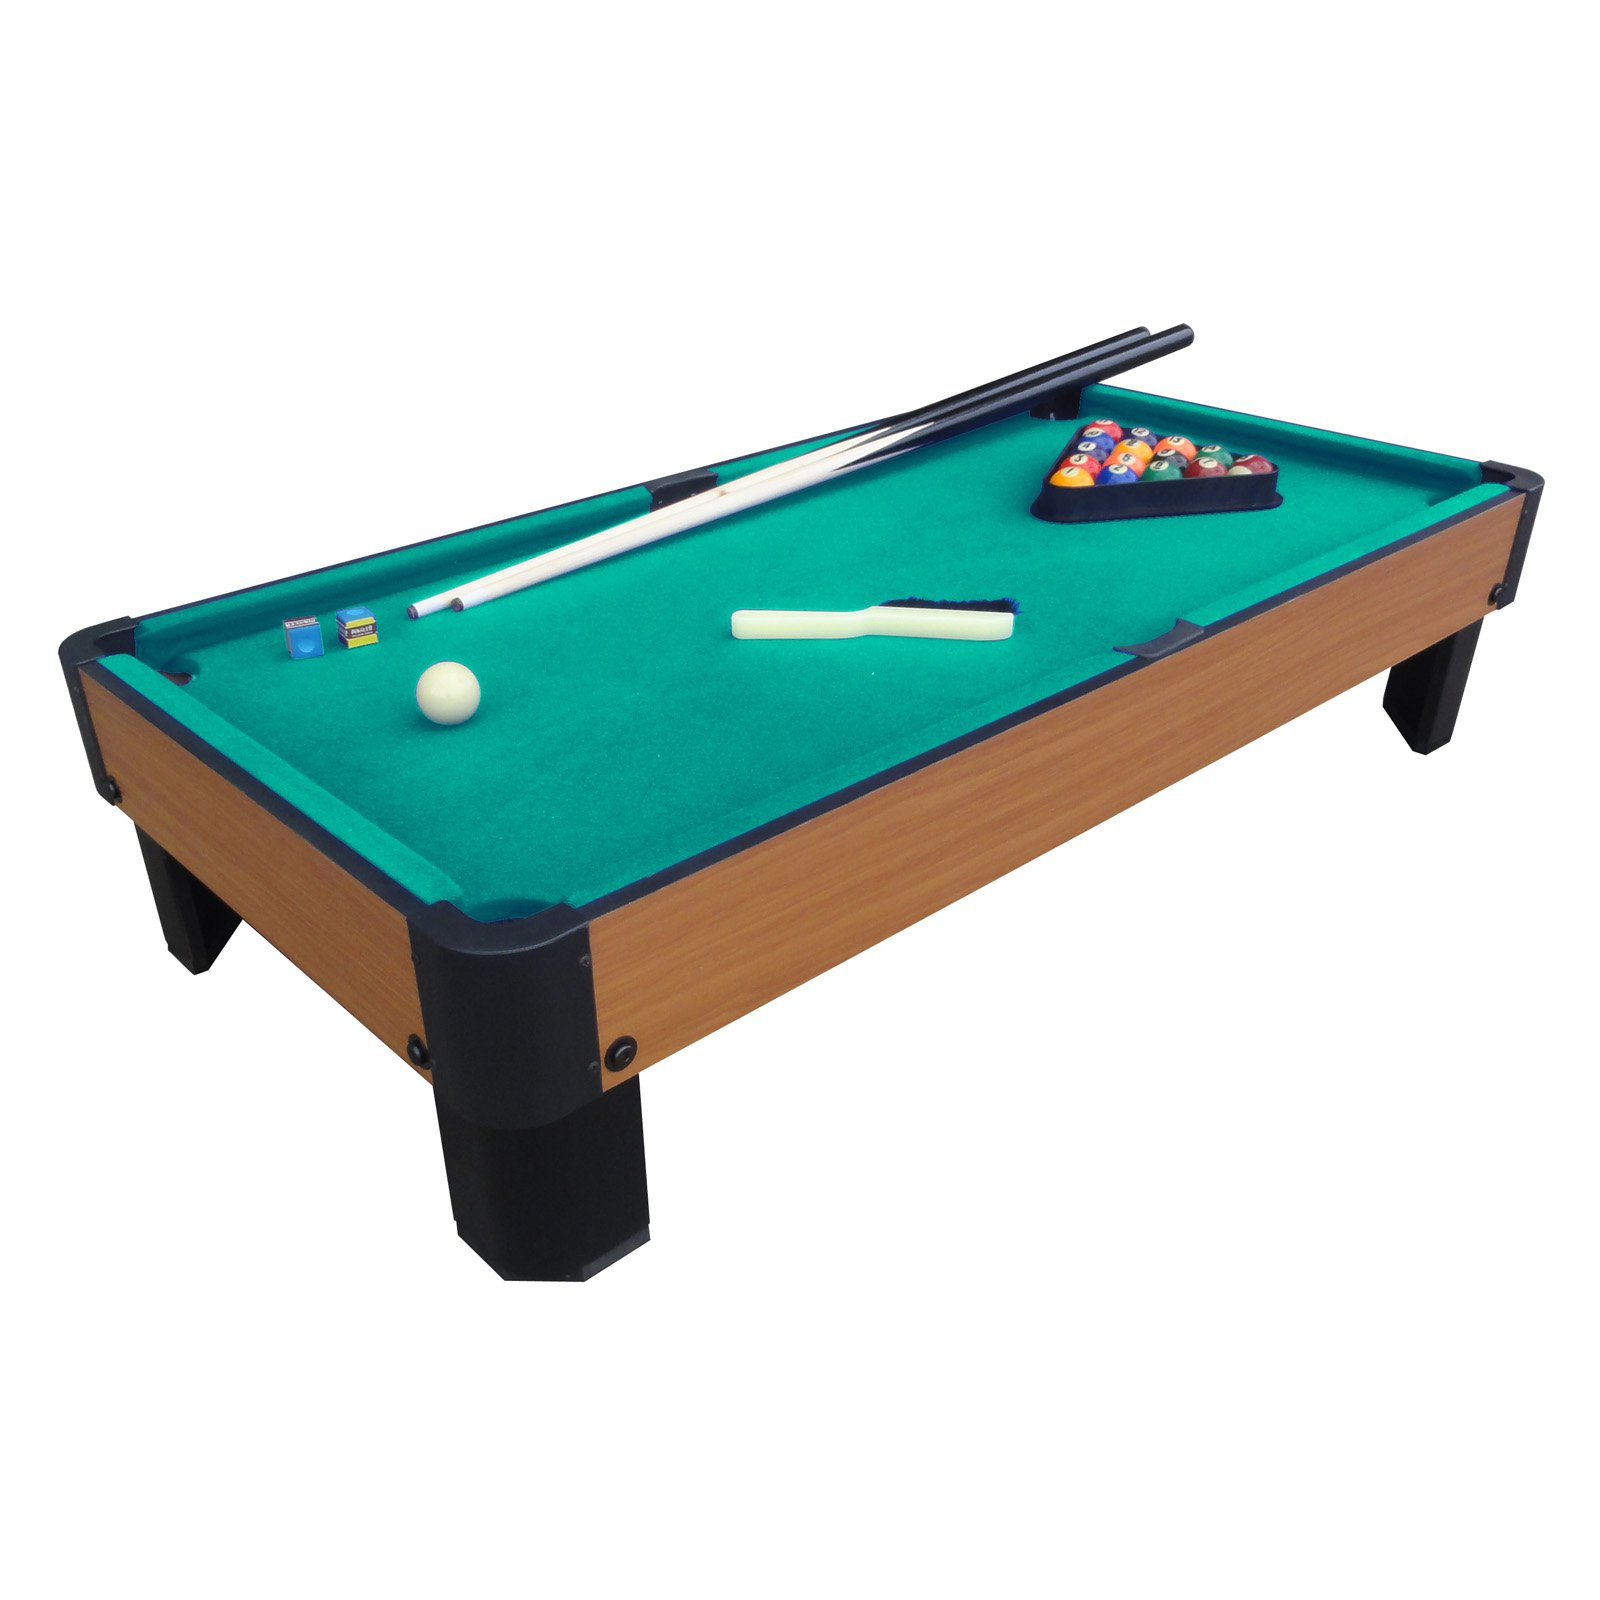 Mizerak Pool Table | 6 Foot Pool Tables for Sale | 6 Foot Slate Pool Table for Sale